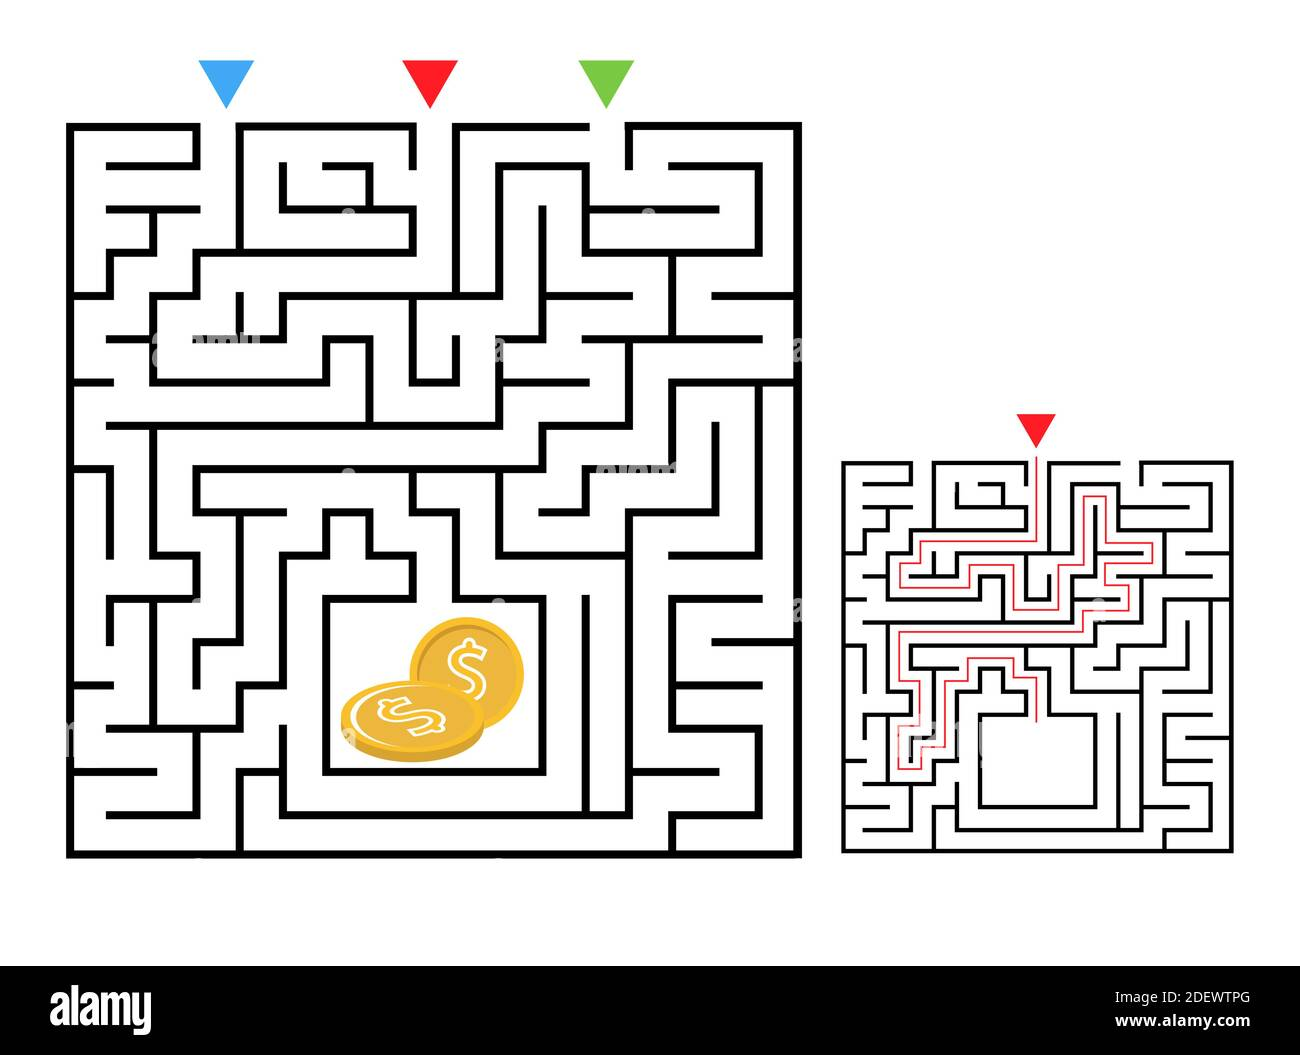 Page 3 Path Maze Activity Kids High Resolution Stock Photography And Images Alamy [ 1055 x 1300 Pixel ]